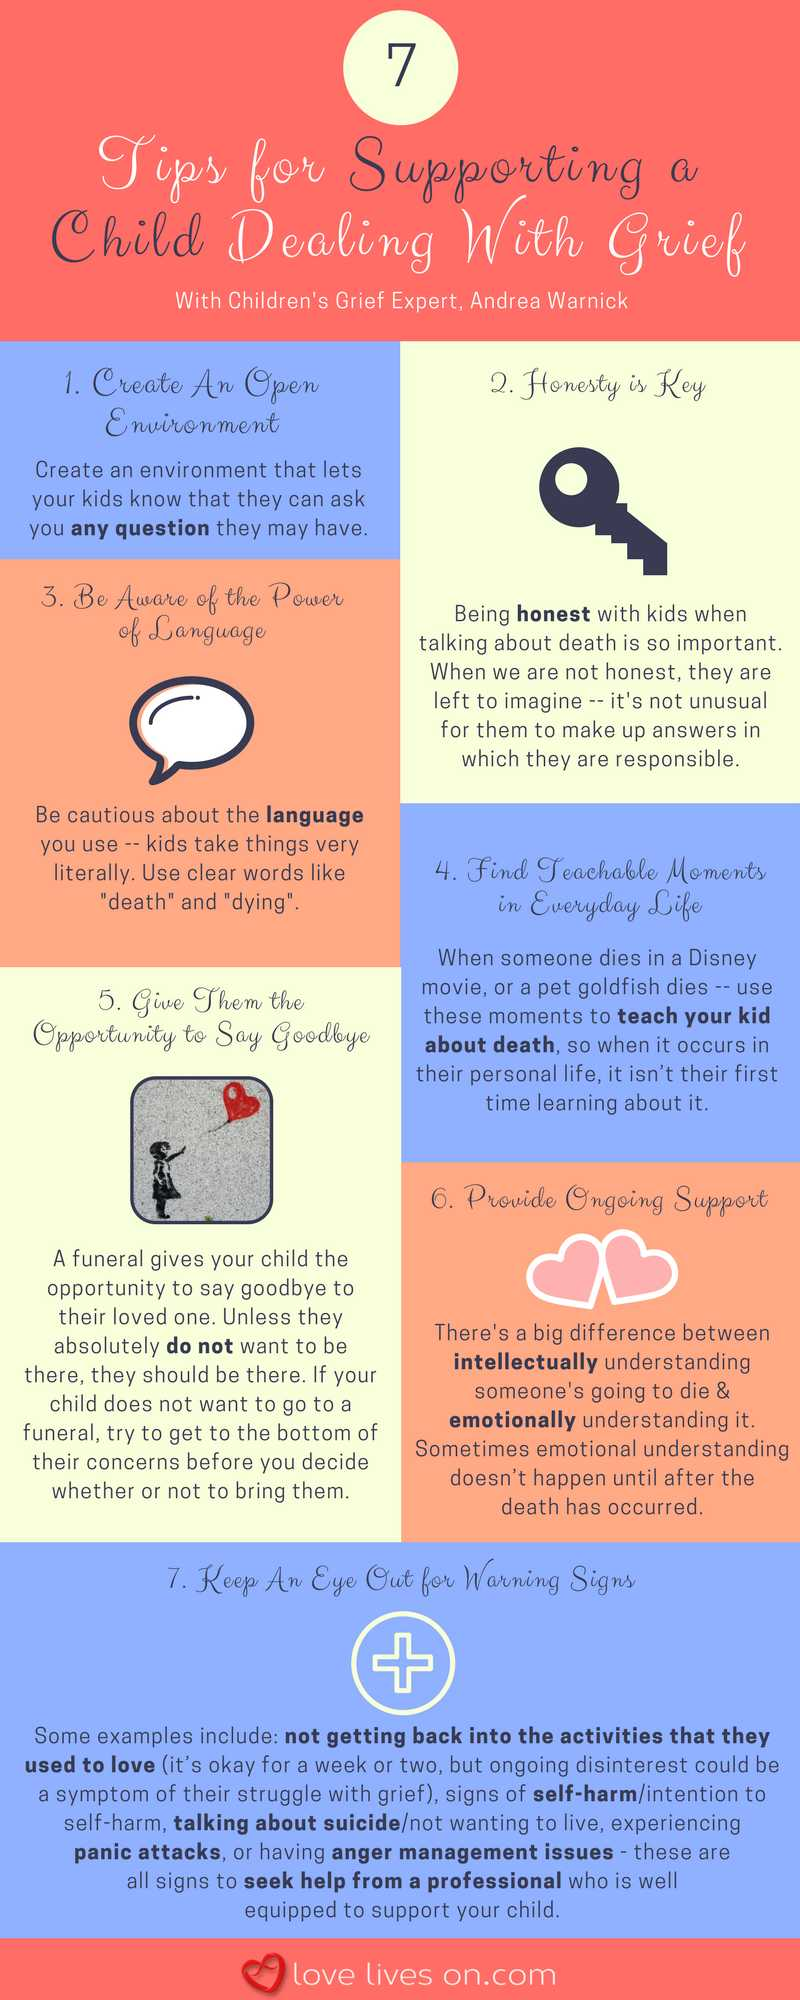 Infogrpahic: 7 Tips for Supporting a Child Dealing With Grief